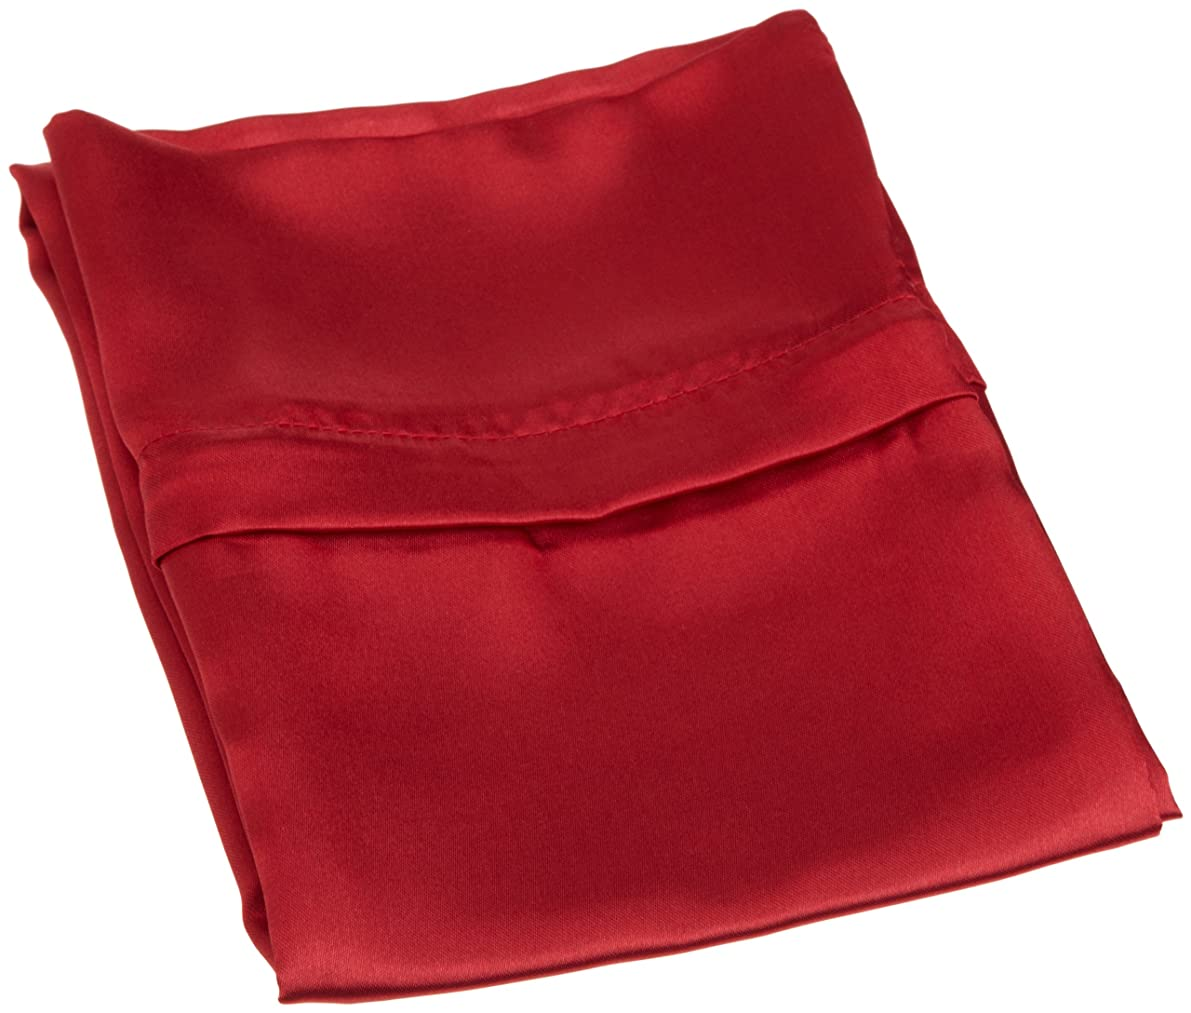 Divatex Home Fashions Royal Opulance Zippered Satin Pillow Case, Red